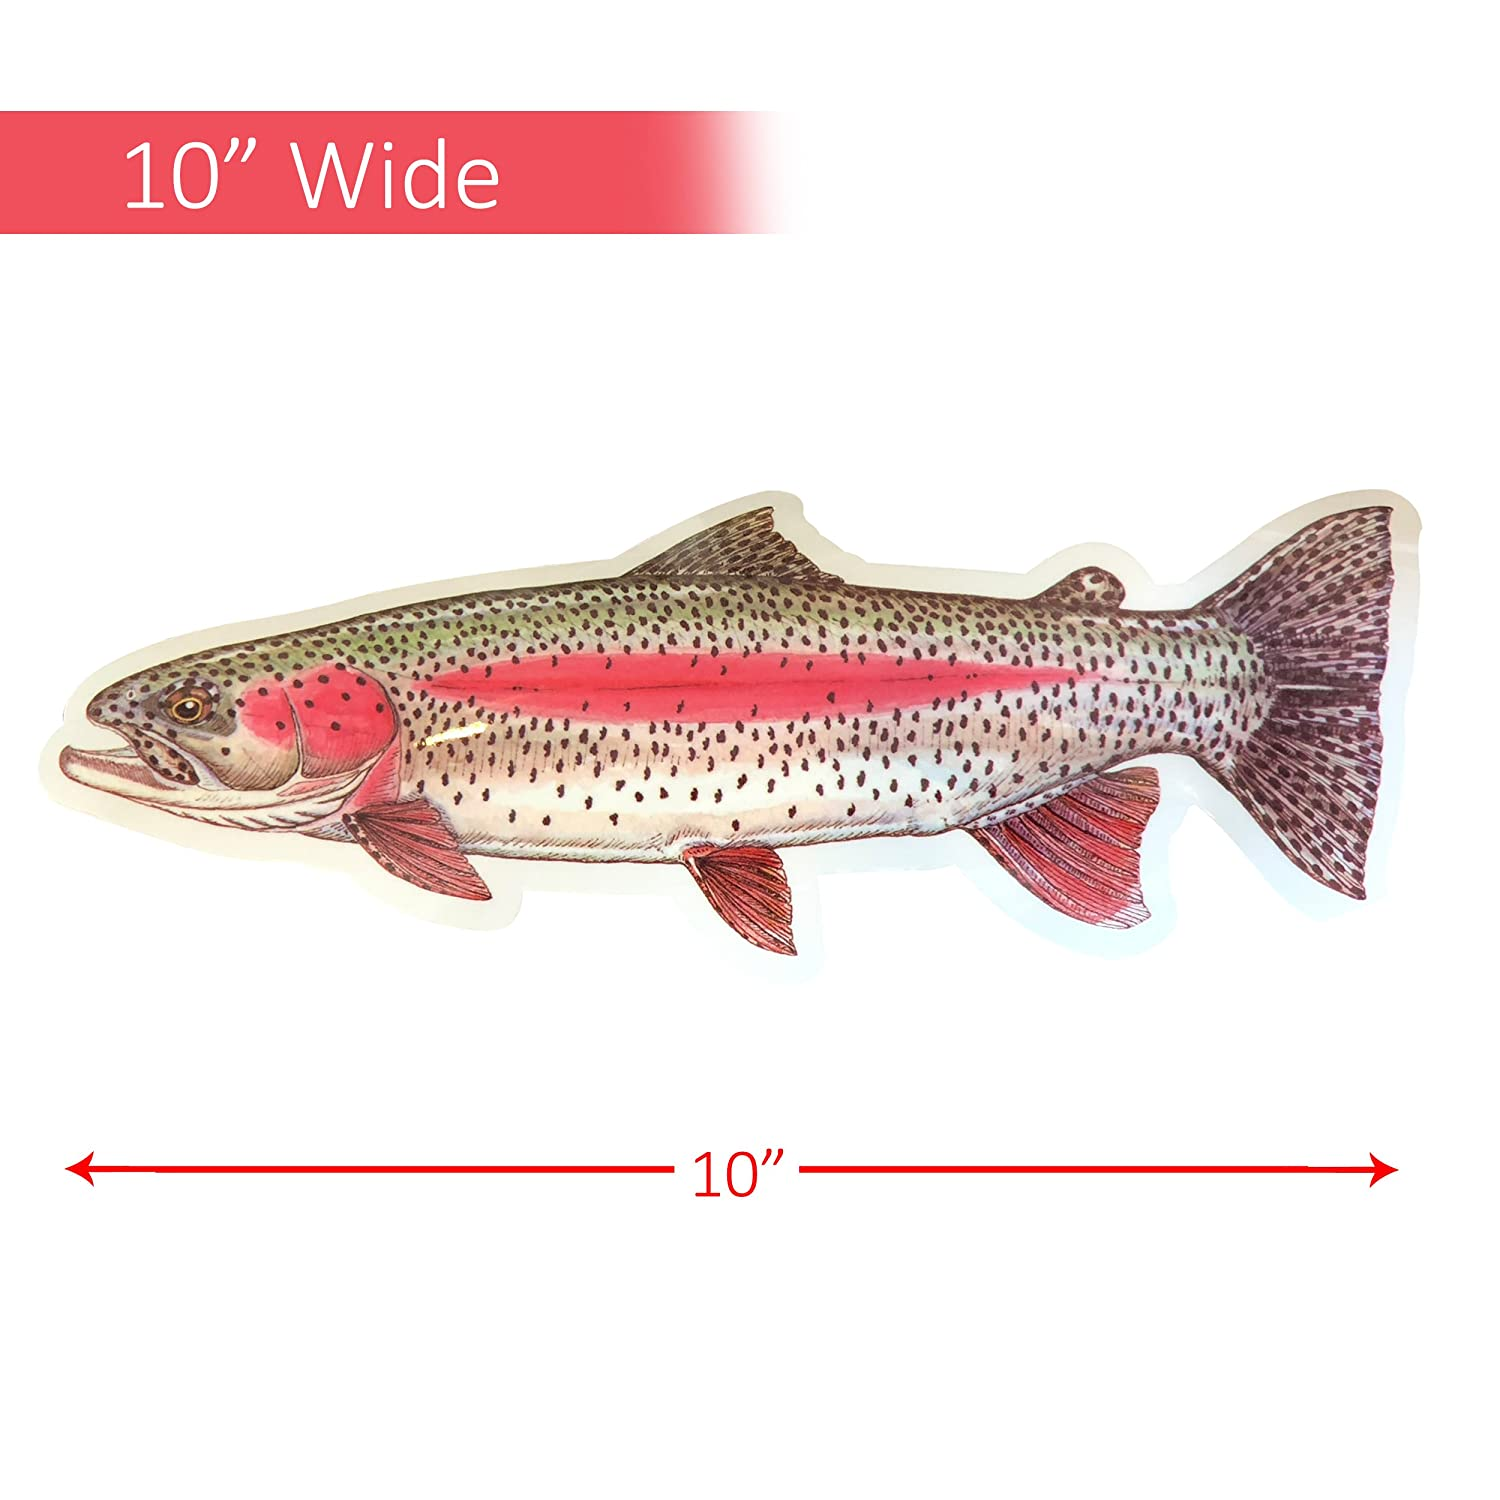 Amazon.com: Big Brown Trout Decal - Jeff Currier Fish Decal ...